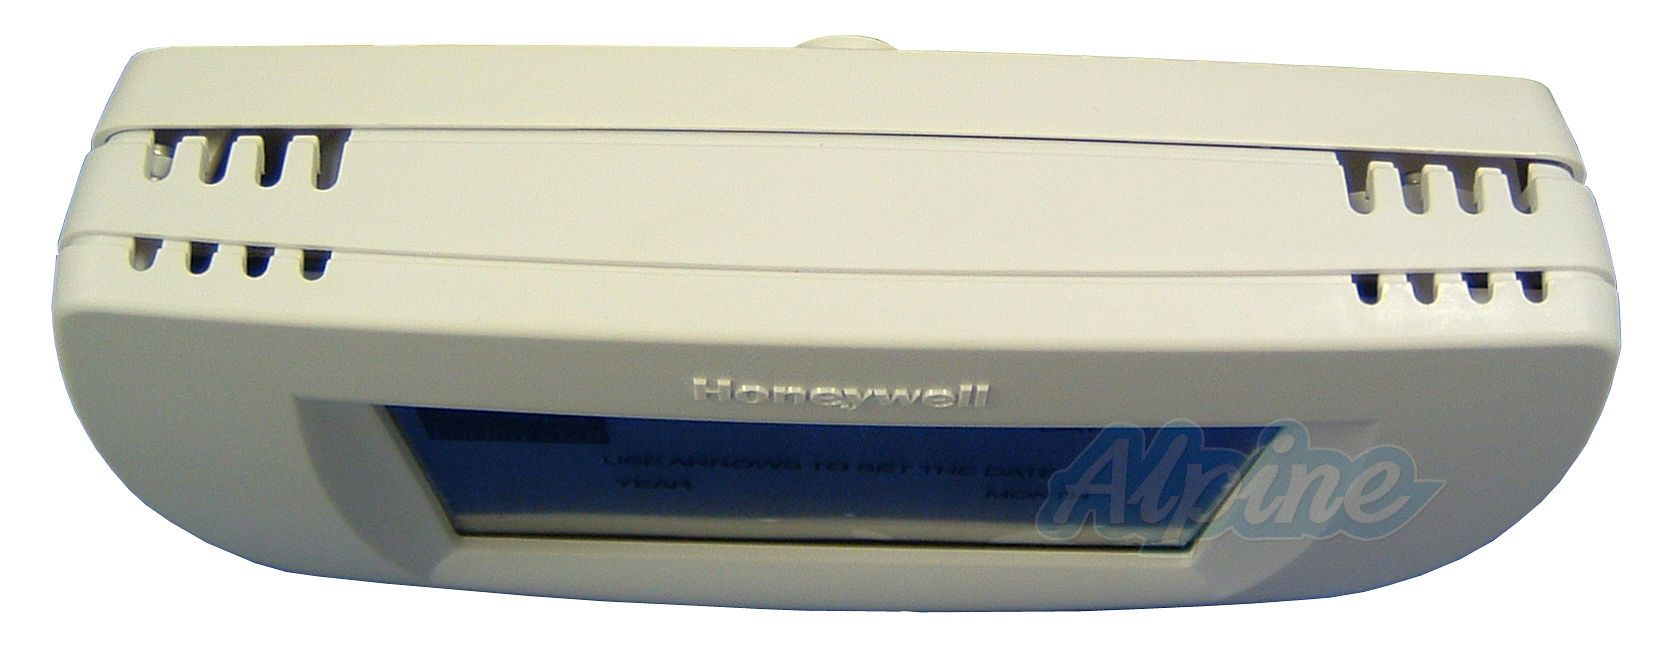 Honeywell Th8320u1008 Instructions Brochures Visionpro 8000 Wiring Diagram Th8000 Vision View All Photos